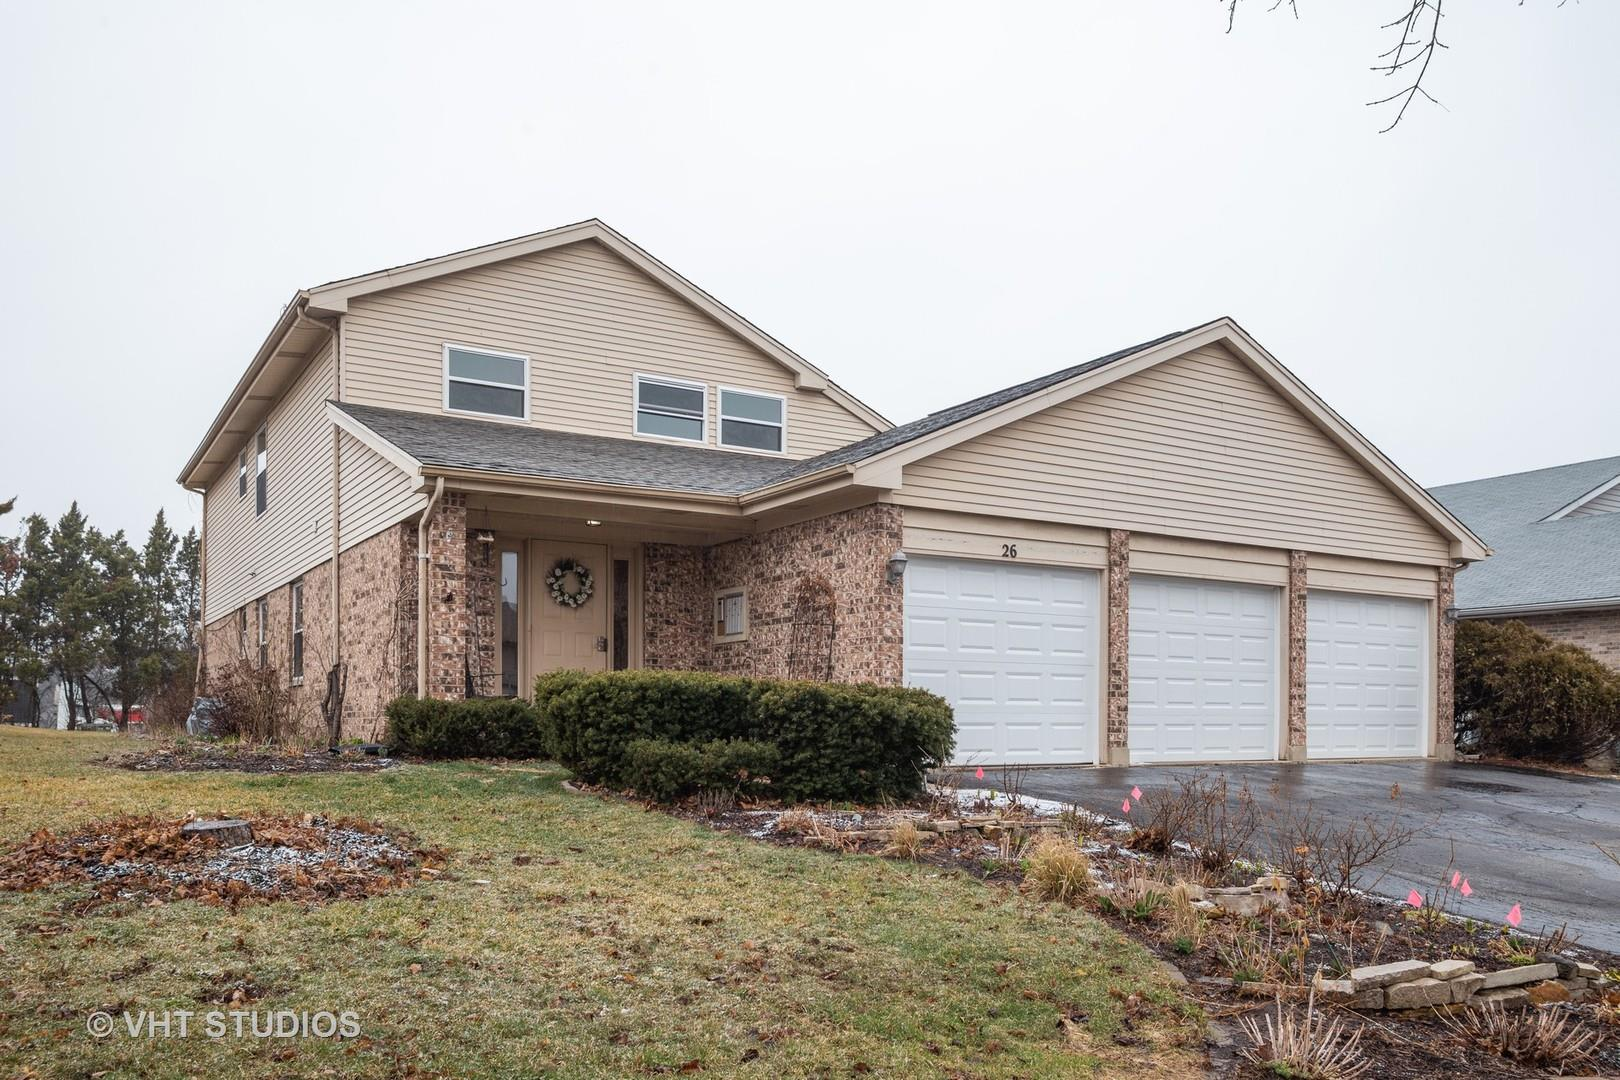 26 Terry Drive, Roselle, IL 60172 - #: 10666405